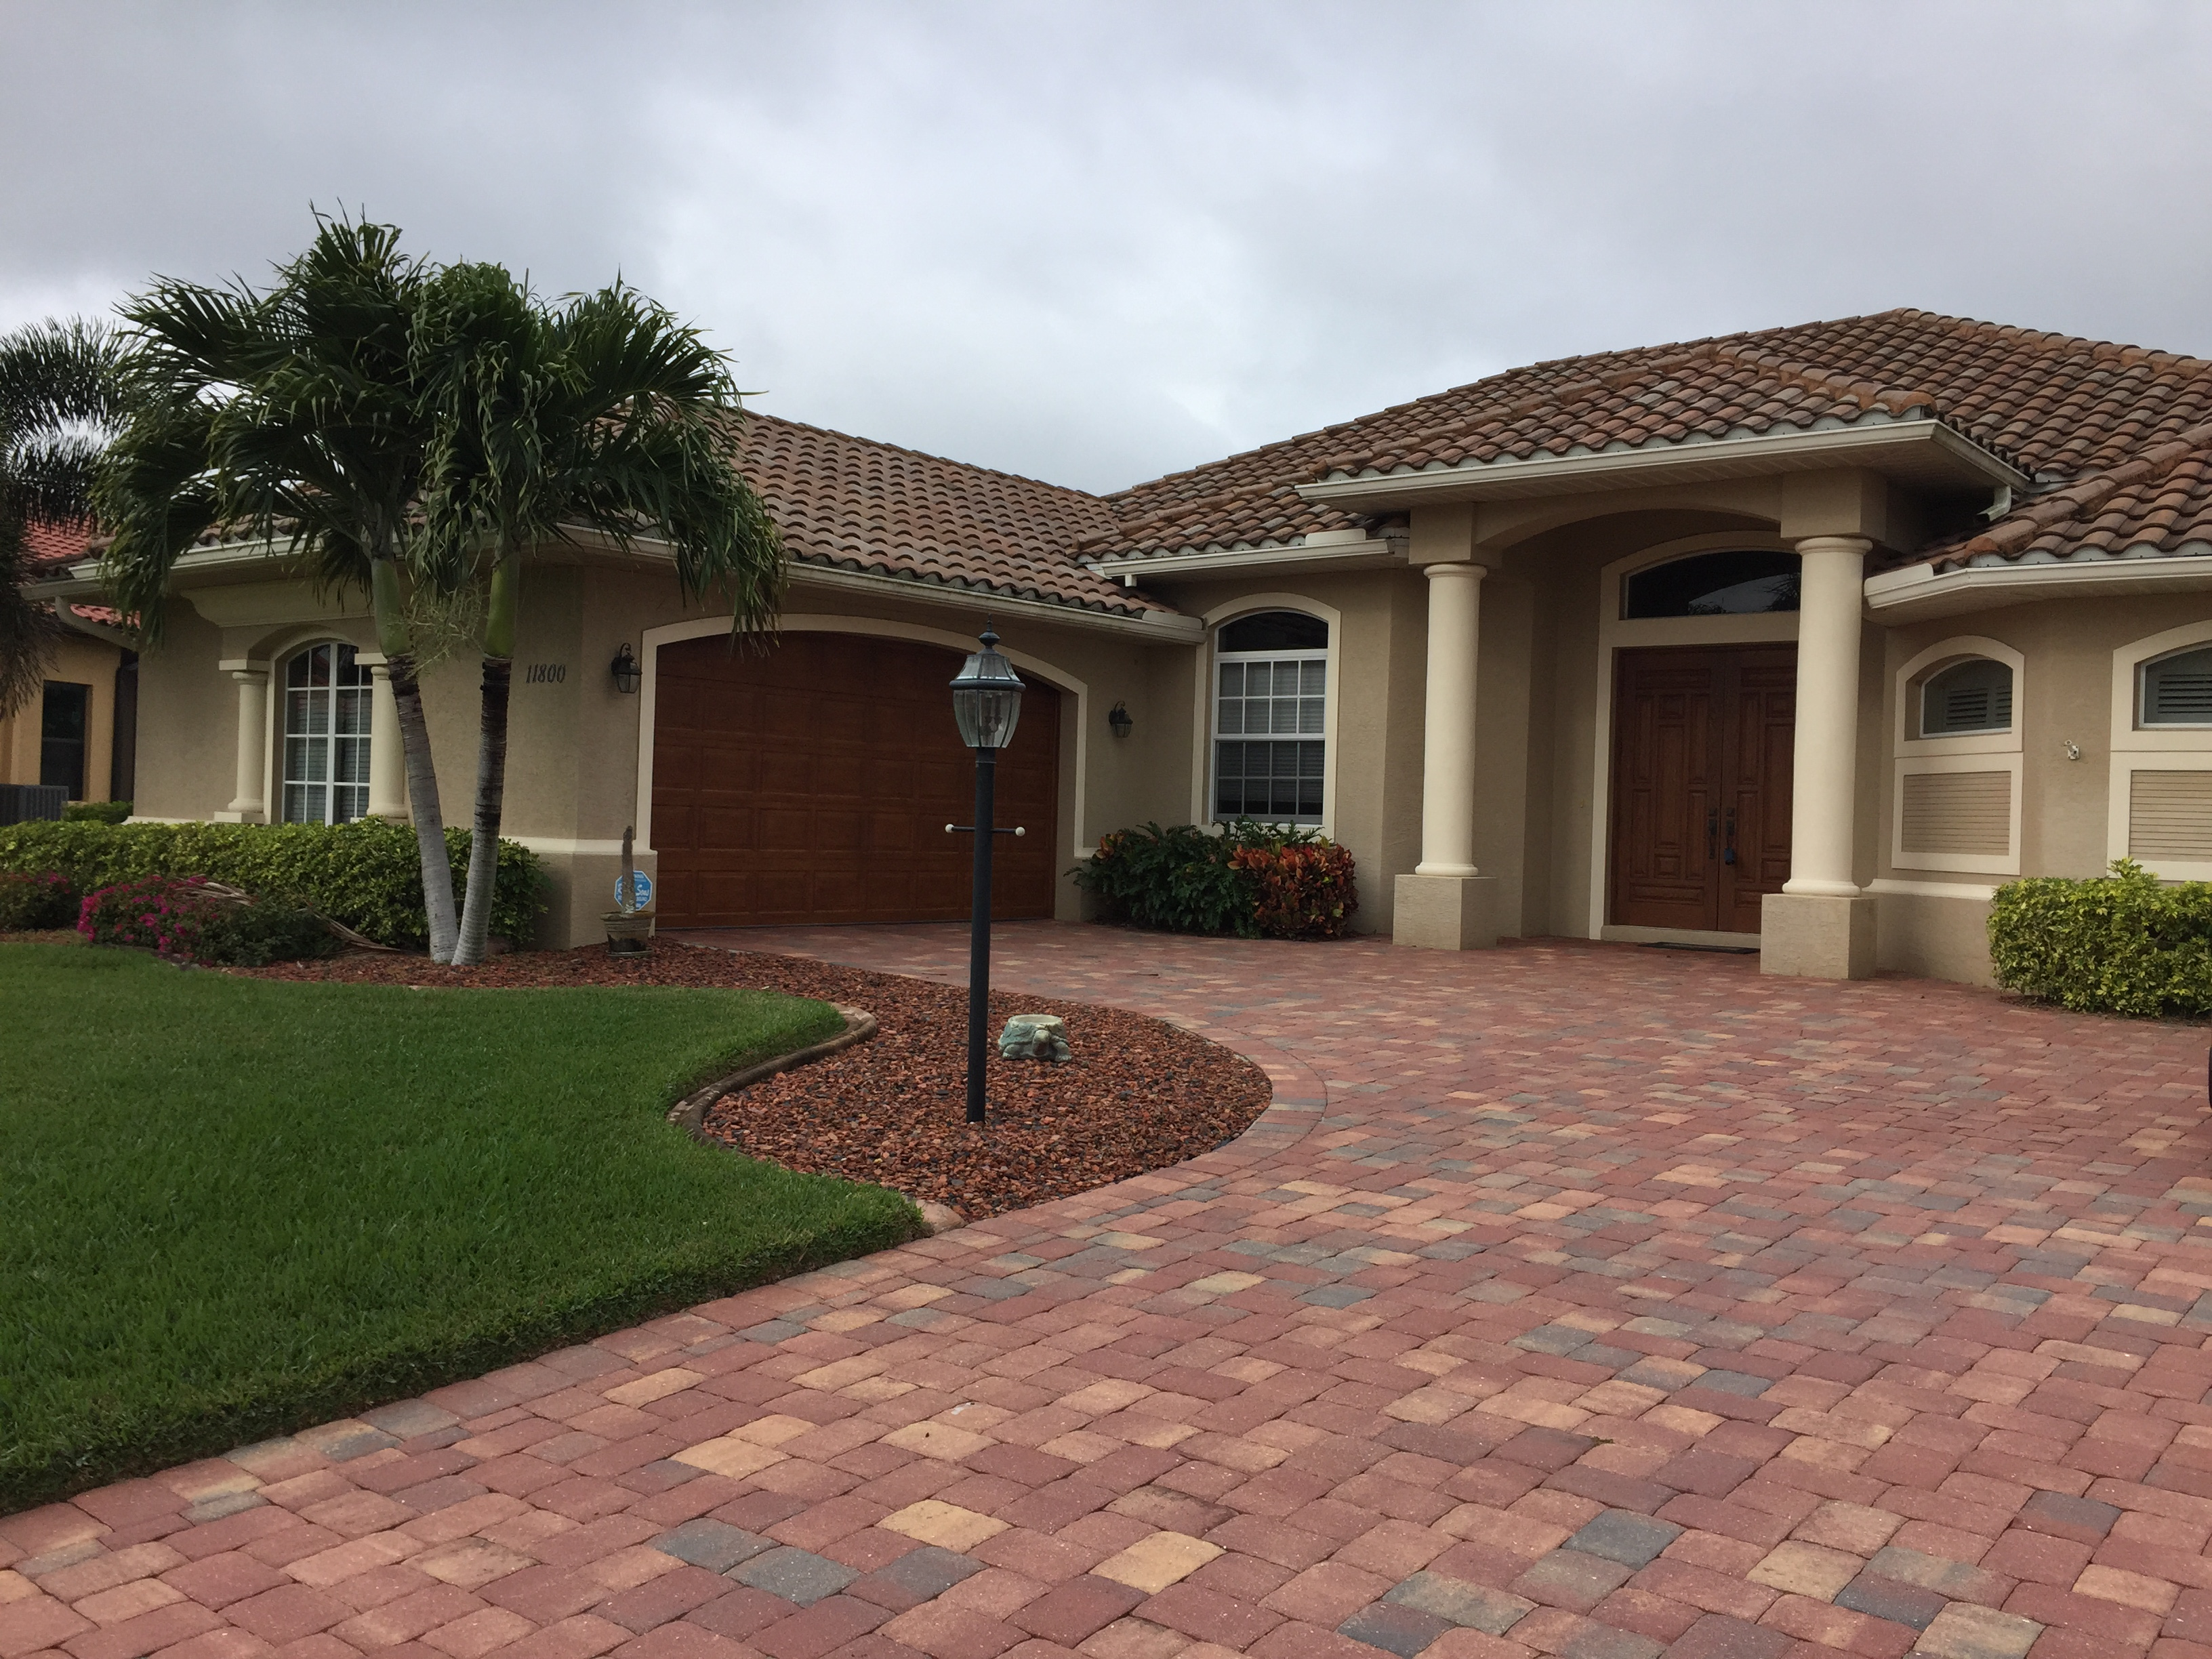 . Cape Coral FL Open House 3 Bedroom 3 Bath home in Golf Community